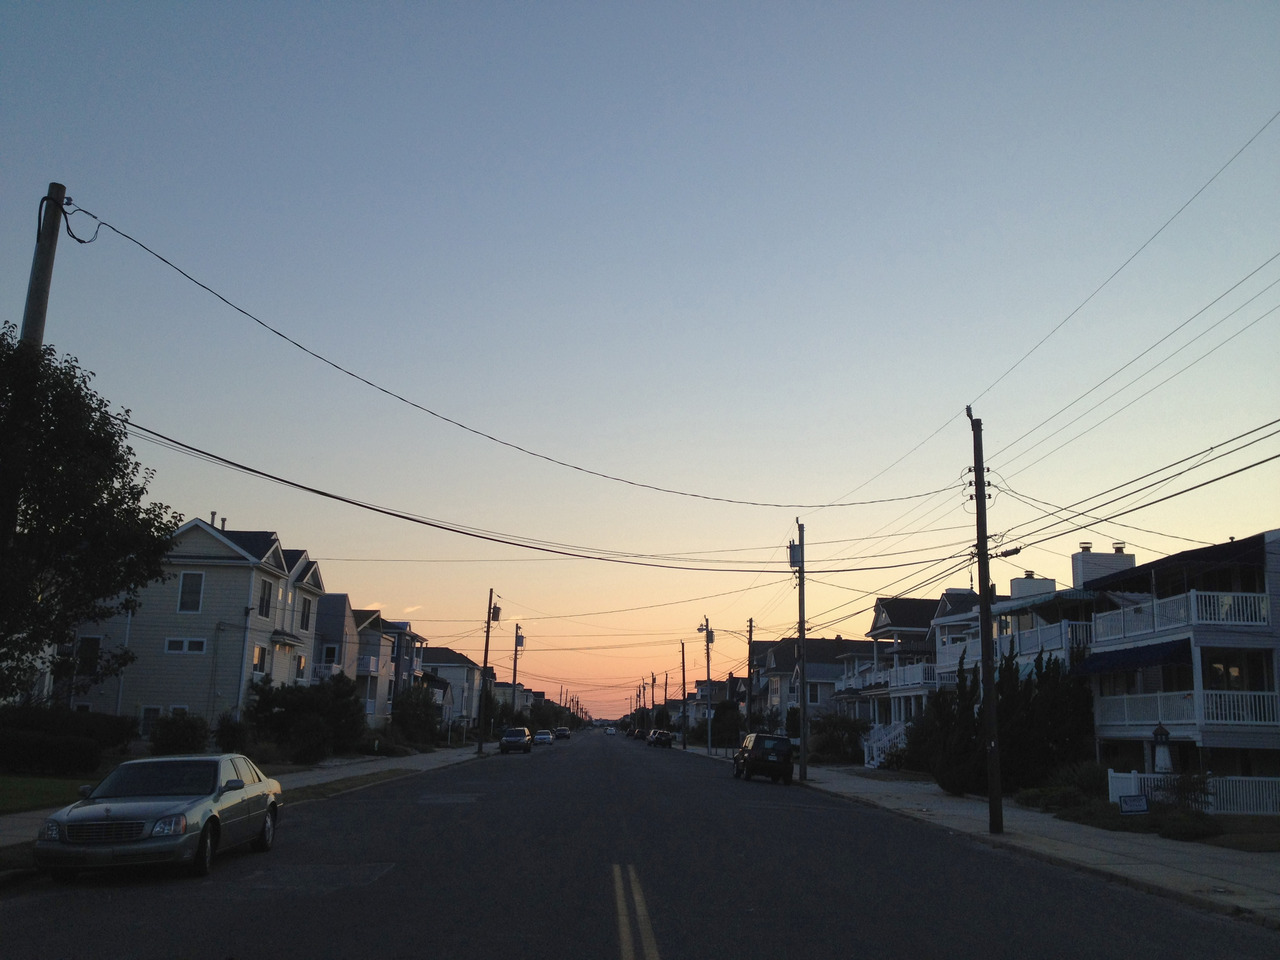 looking south on wesley avenue, ocean city, nj 6:45 pm, 68° 5 miles